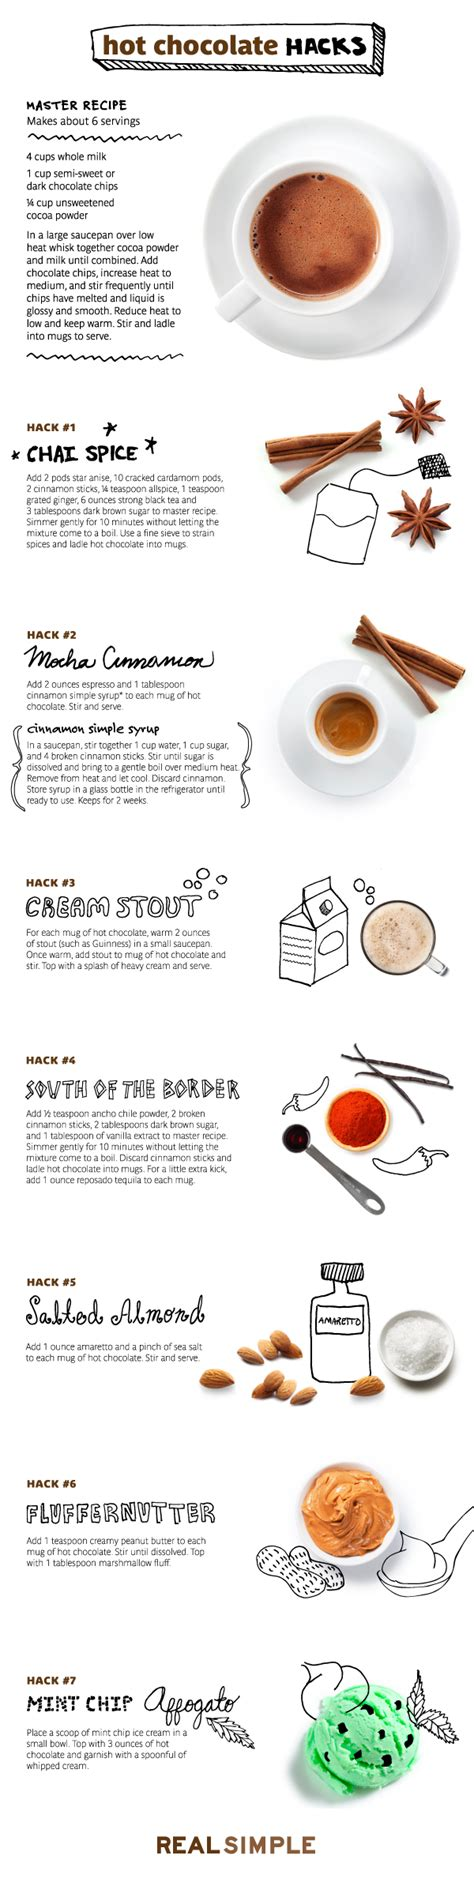 7 Ingenious Hacks to Make Hot Chocolate Even Better   Real